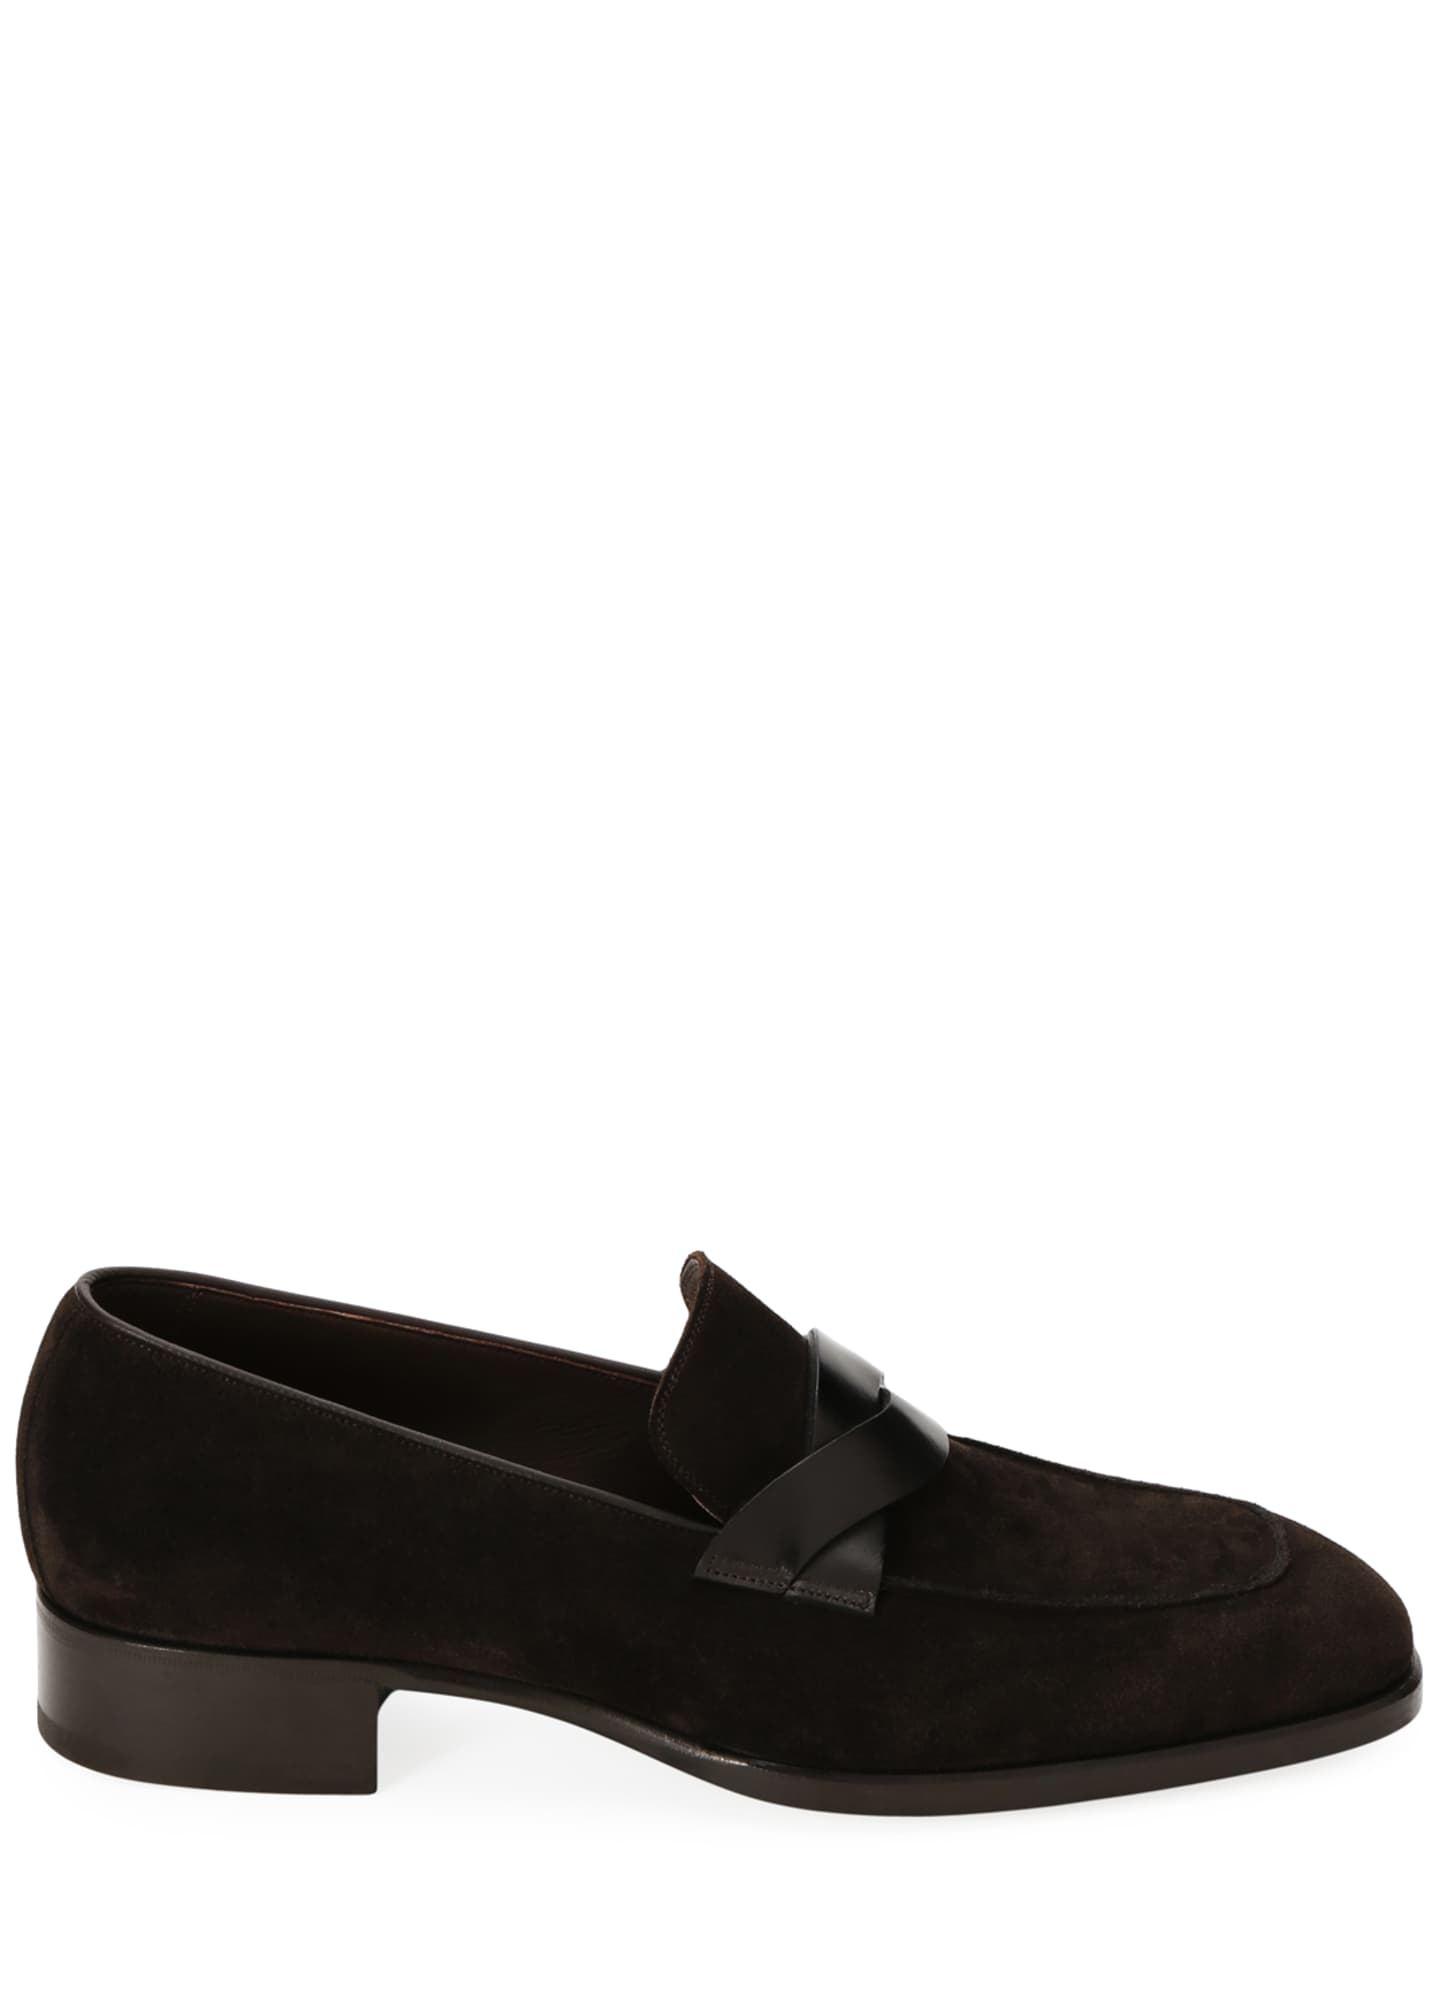 Image 2 of 3: Men's Twisted Strap Suede Loafers